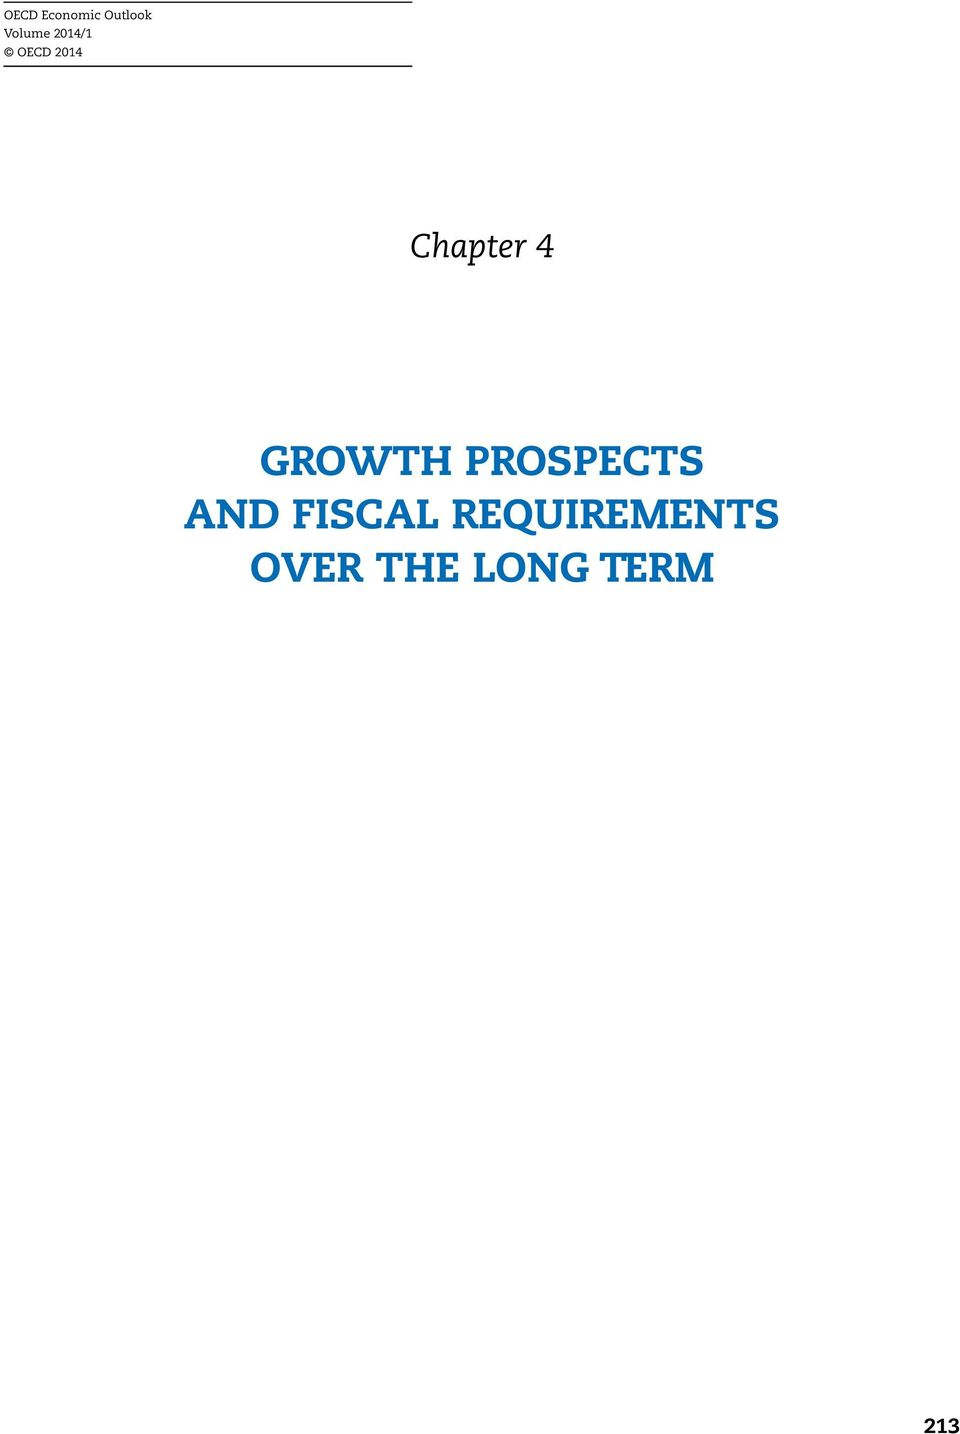 GROWTH PROSPECTS AND FISCAL